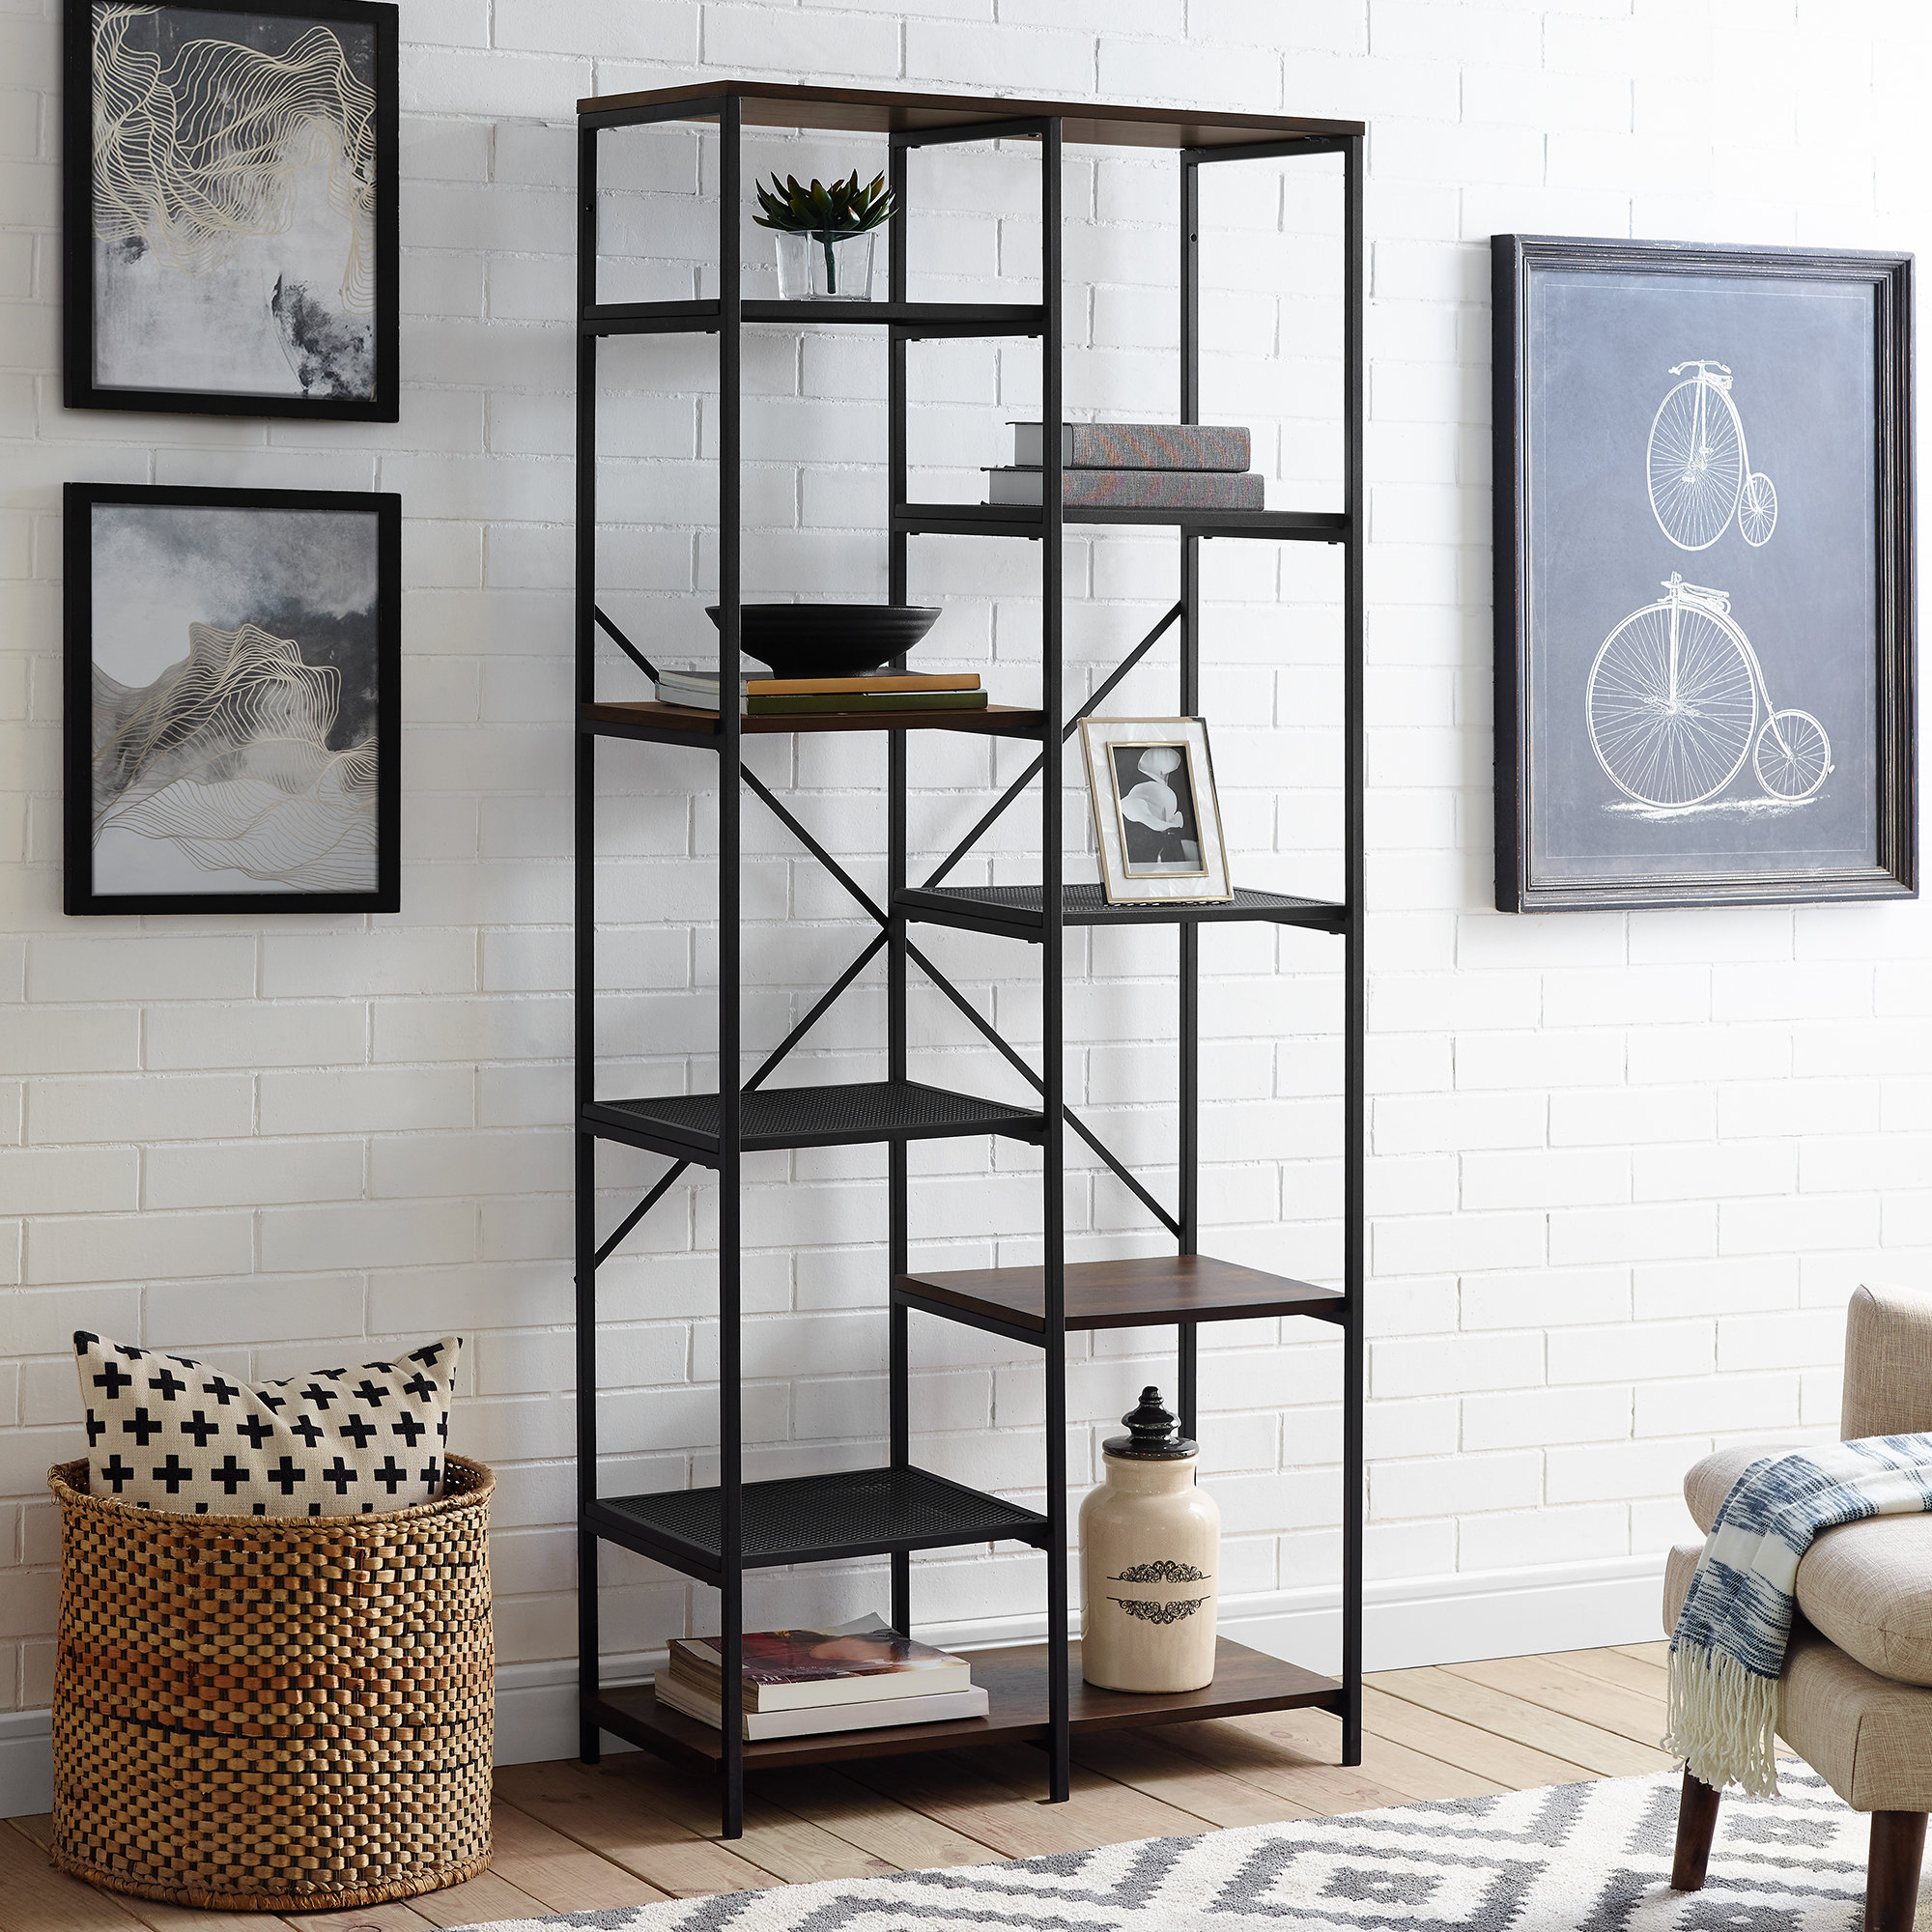 Bowman Etagere Bookcases Intended For Fashionable Bowman Etagere Bookcase (Gallery 1 of 20)